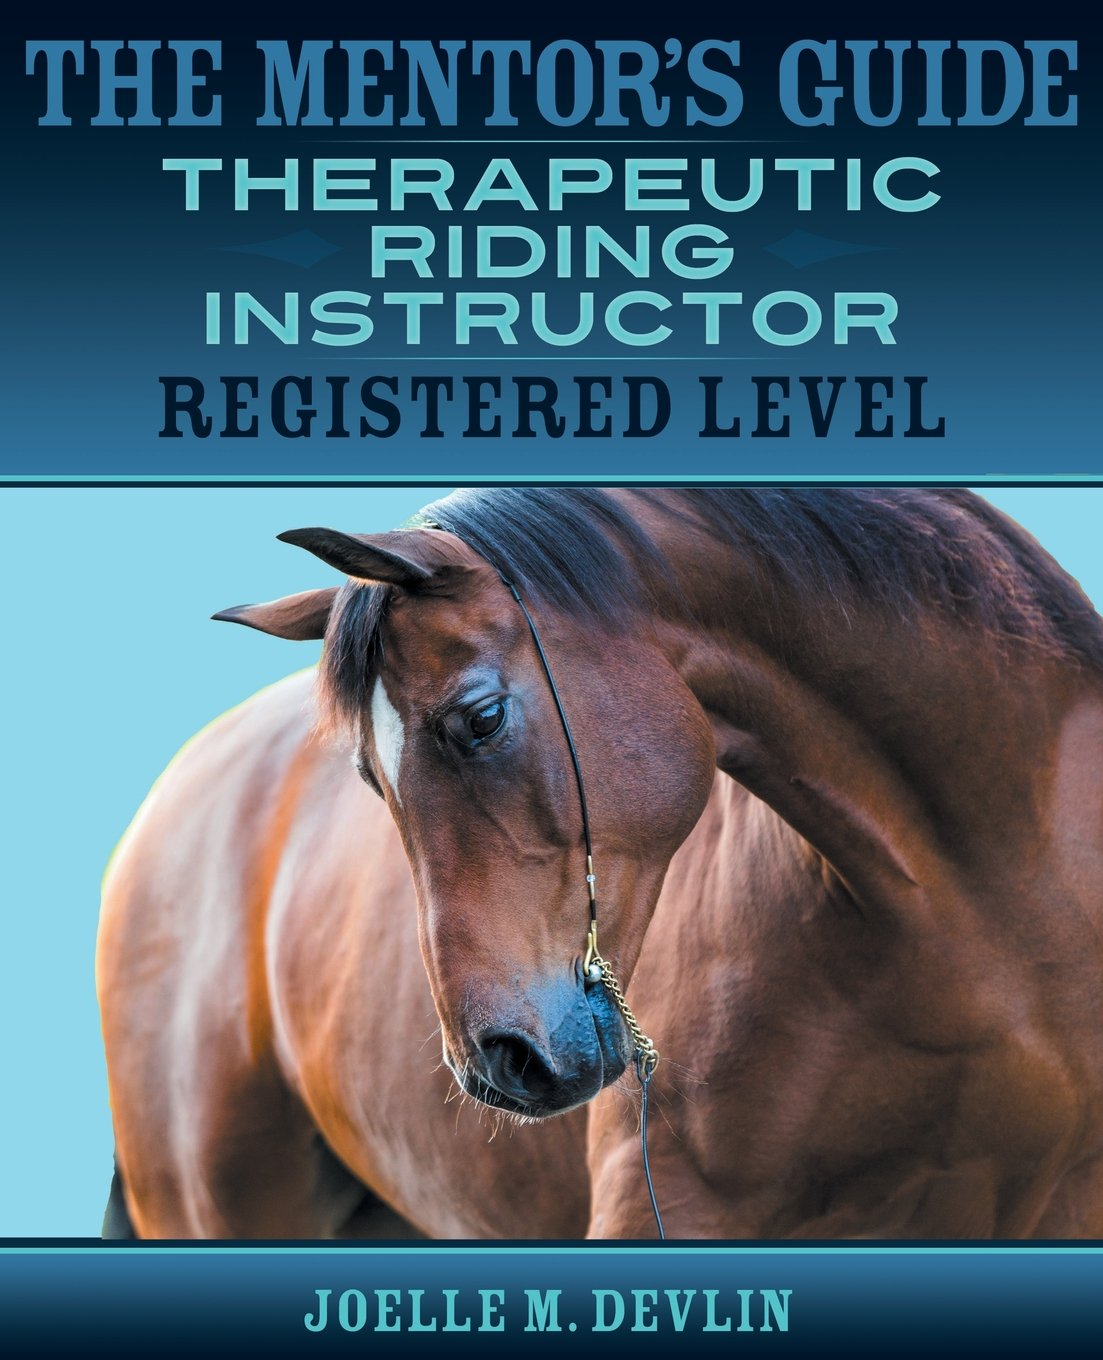 The mentors guide therapeutic riding instructor registered the mentors guide therapeutic riding instructor registered level joelle m devlin 9781457538537 amazon books 1betcityfo Gallery